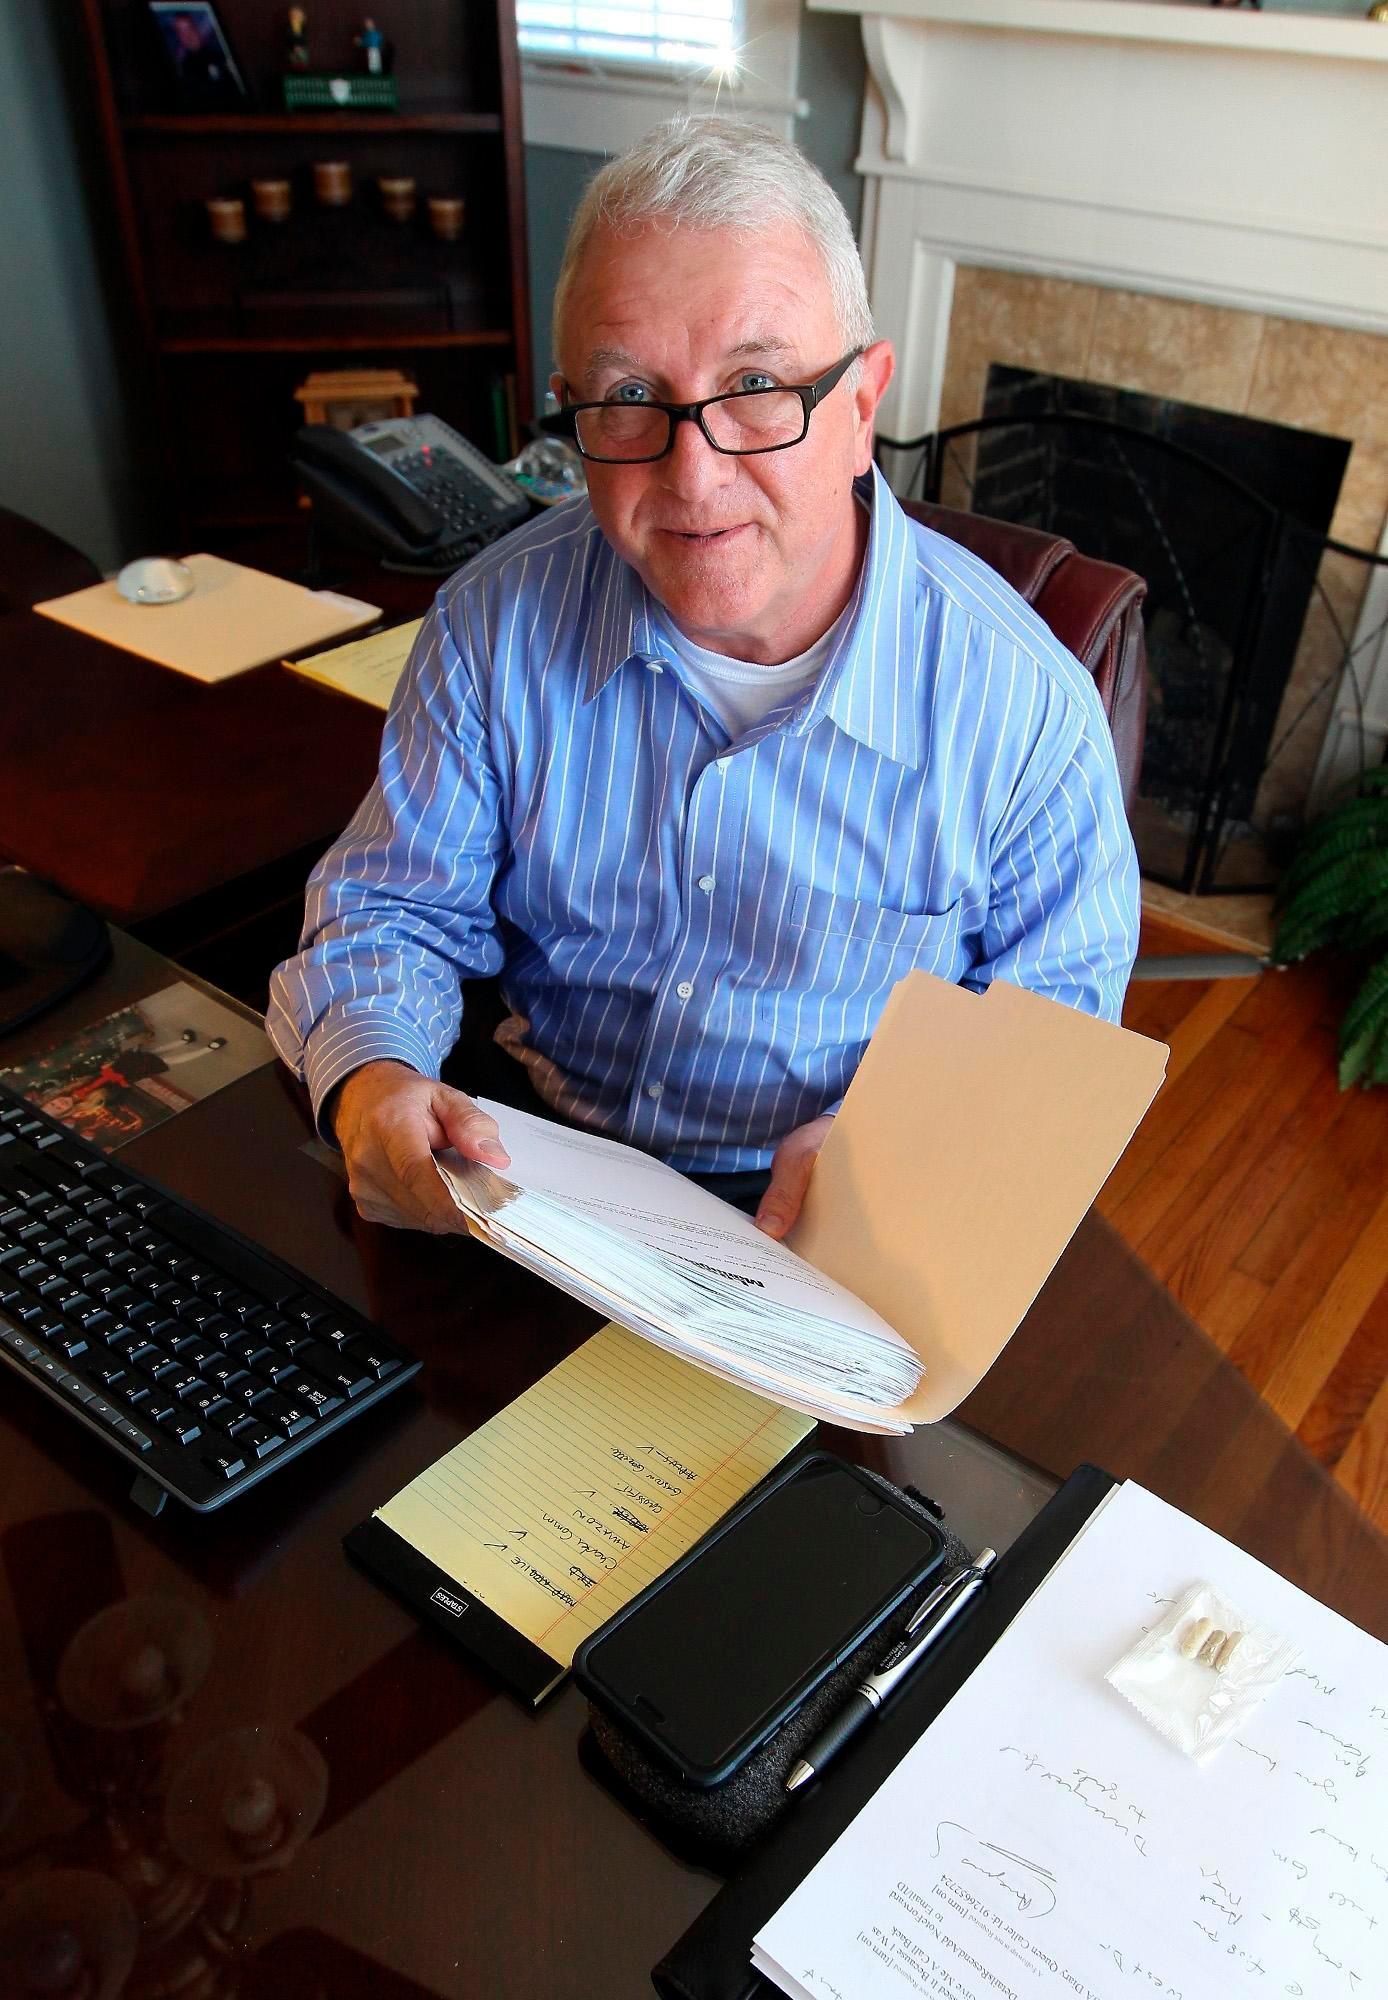 This 2017 photo shows Roger Self in his office at Southeastern Loss Management, in Dallas, N.C. Police say that Self intentionally rammed a vehicle into a restaurant shortly after midday Sunday, May 20, 2018, in Bessemer City, N.C., leaving his 26-year-old daughter and one other person dead and several others injured. Self was immediately arrested. Jail records show he's been charged with two counts of first-degree murder. (John Clark/The Gaston Gazette via AP)